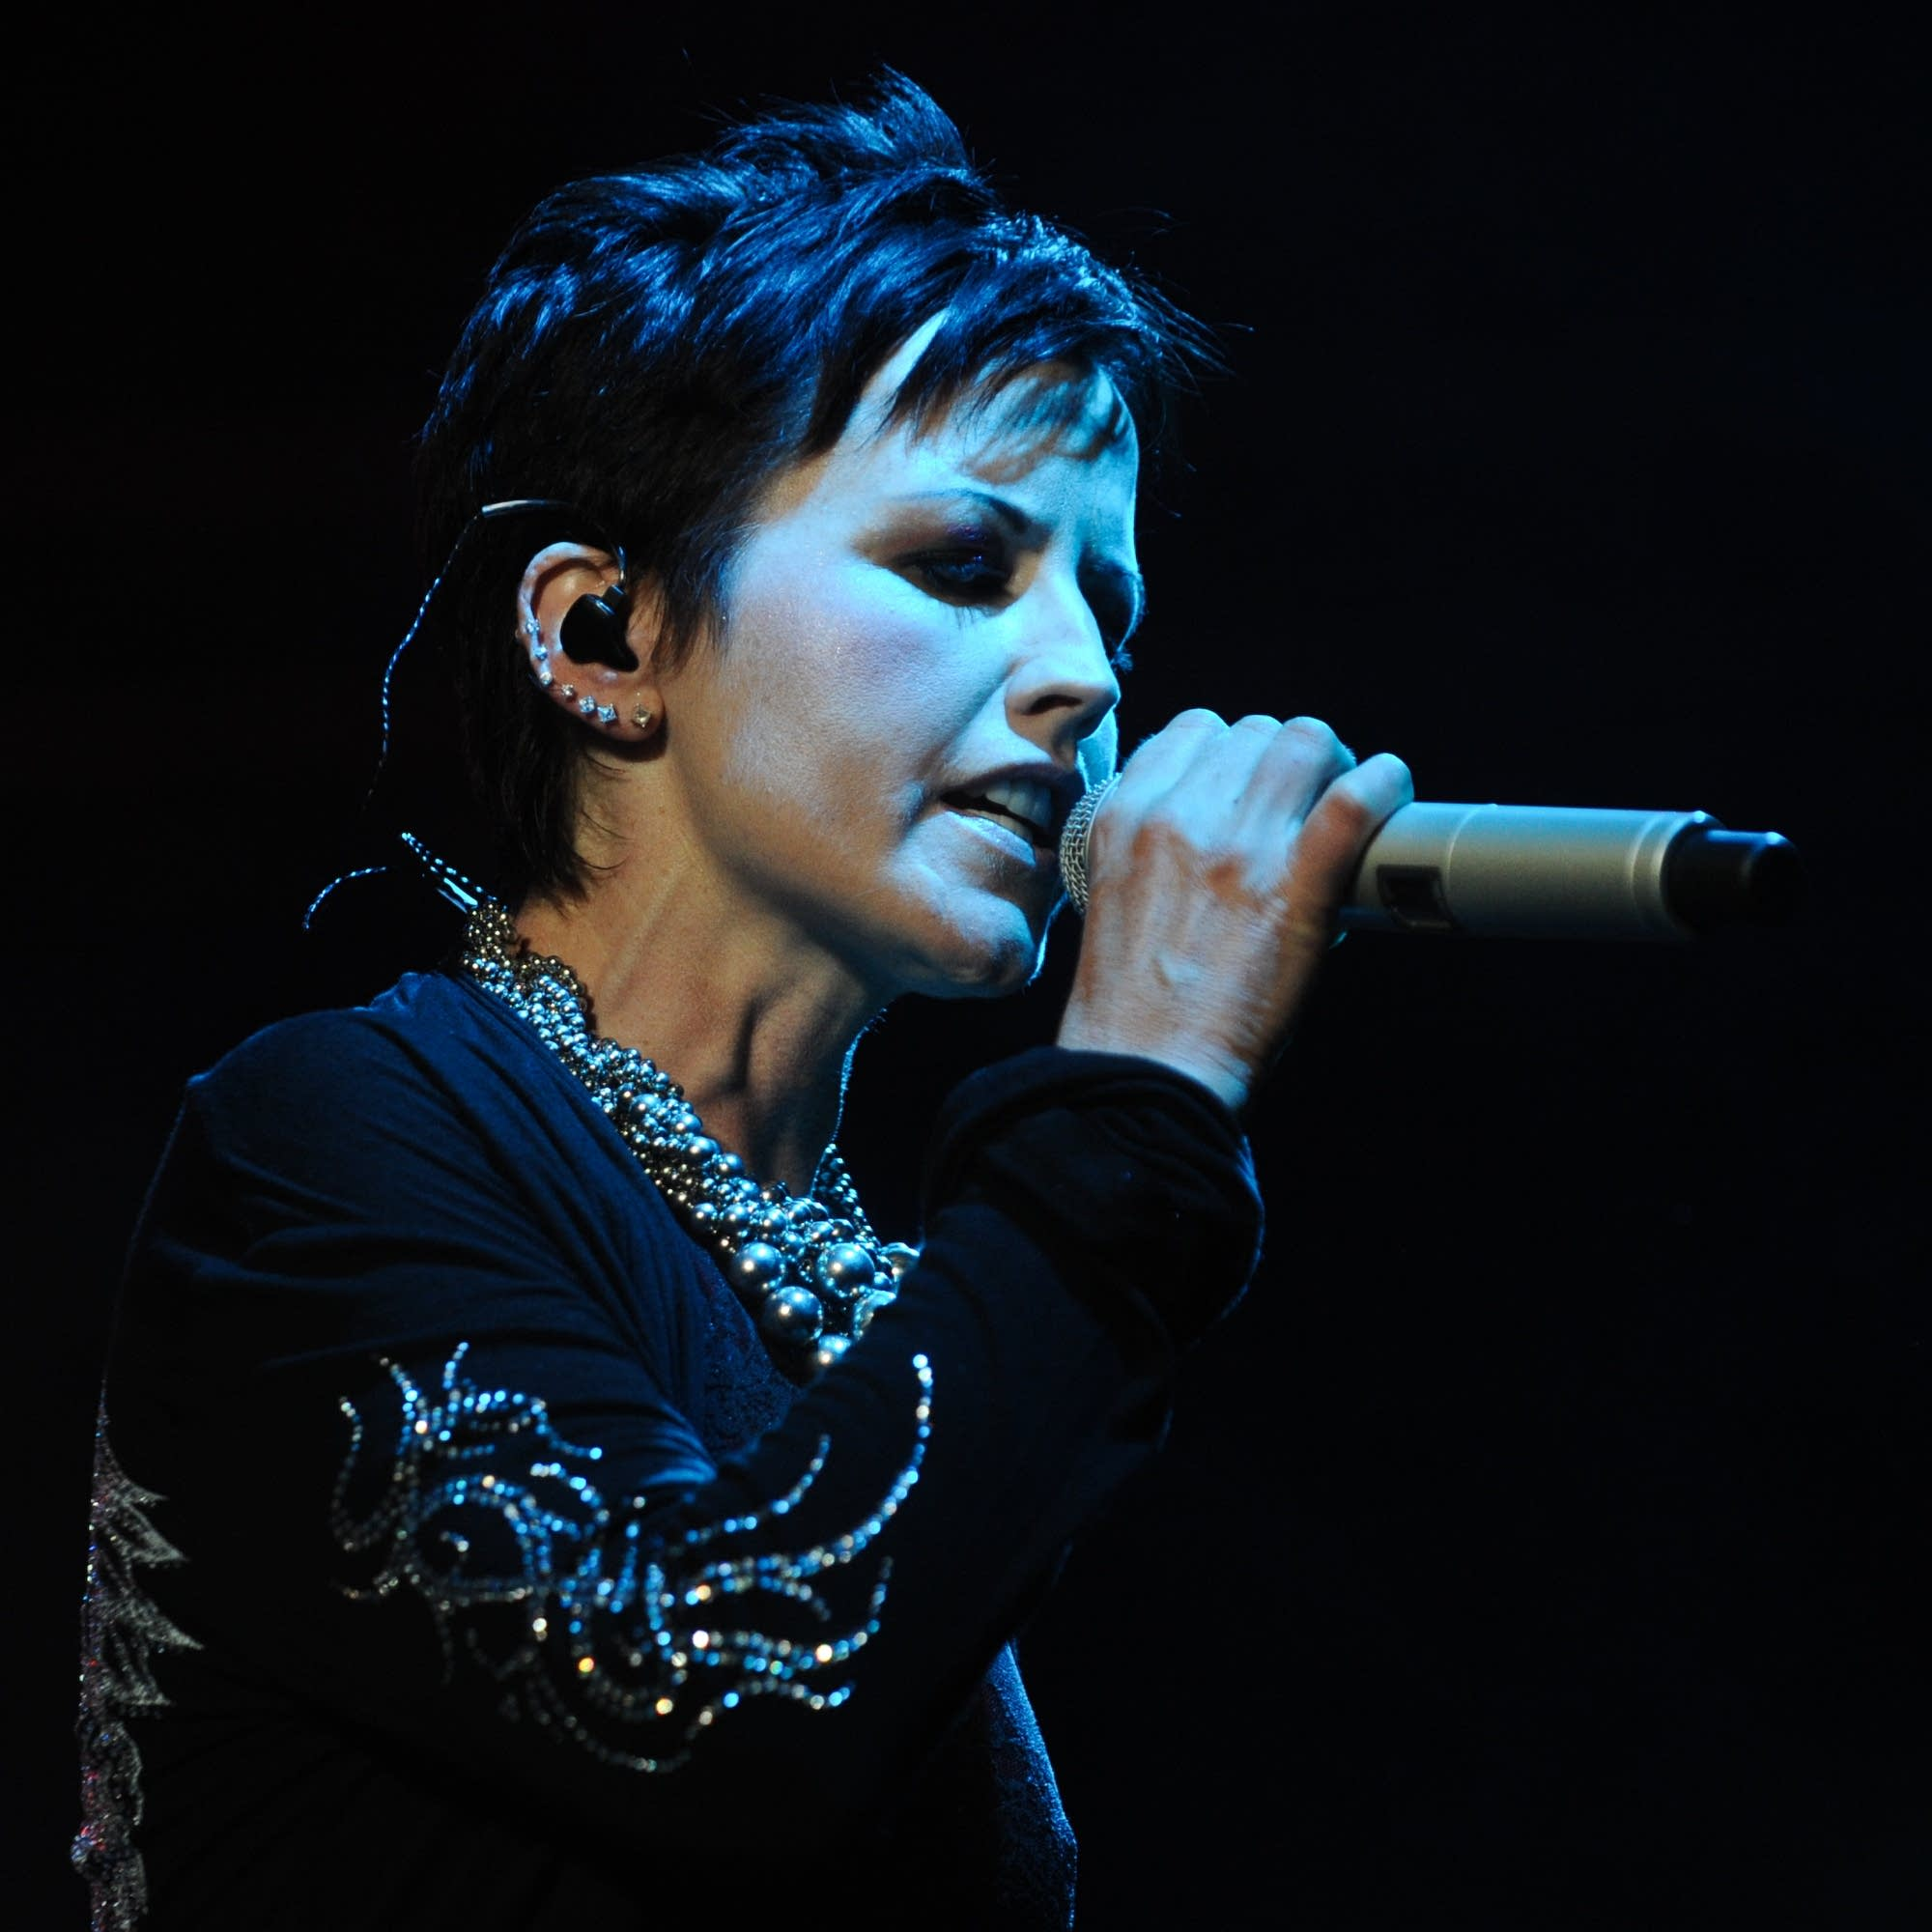 Singer Dolores O'Riordan of the Cranberries.